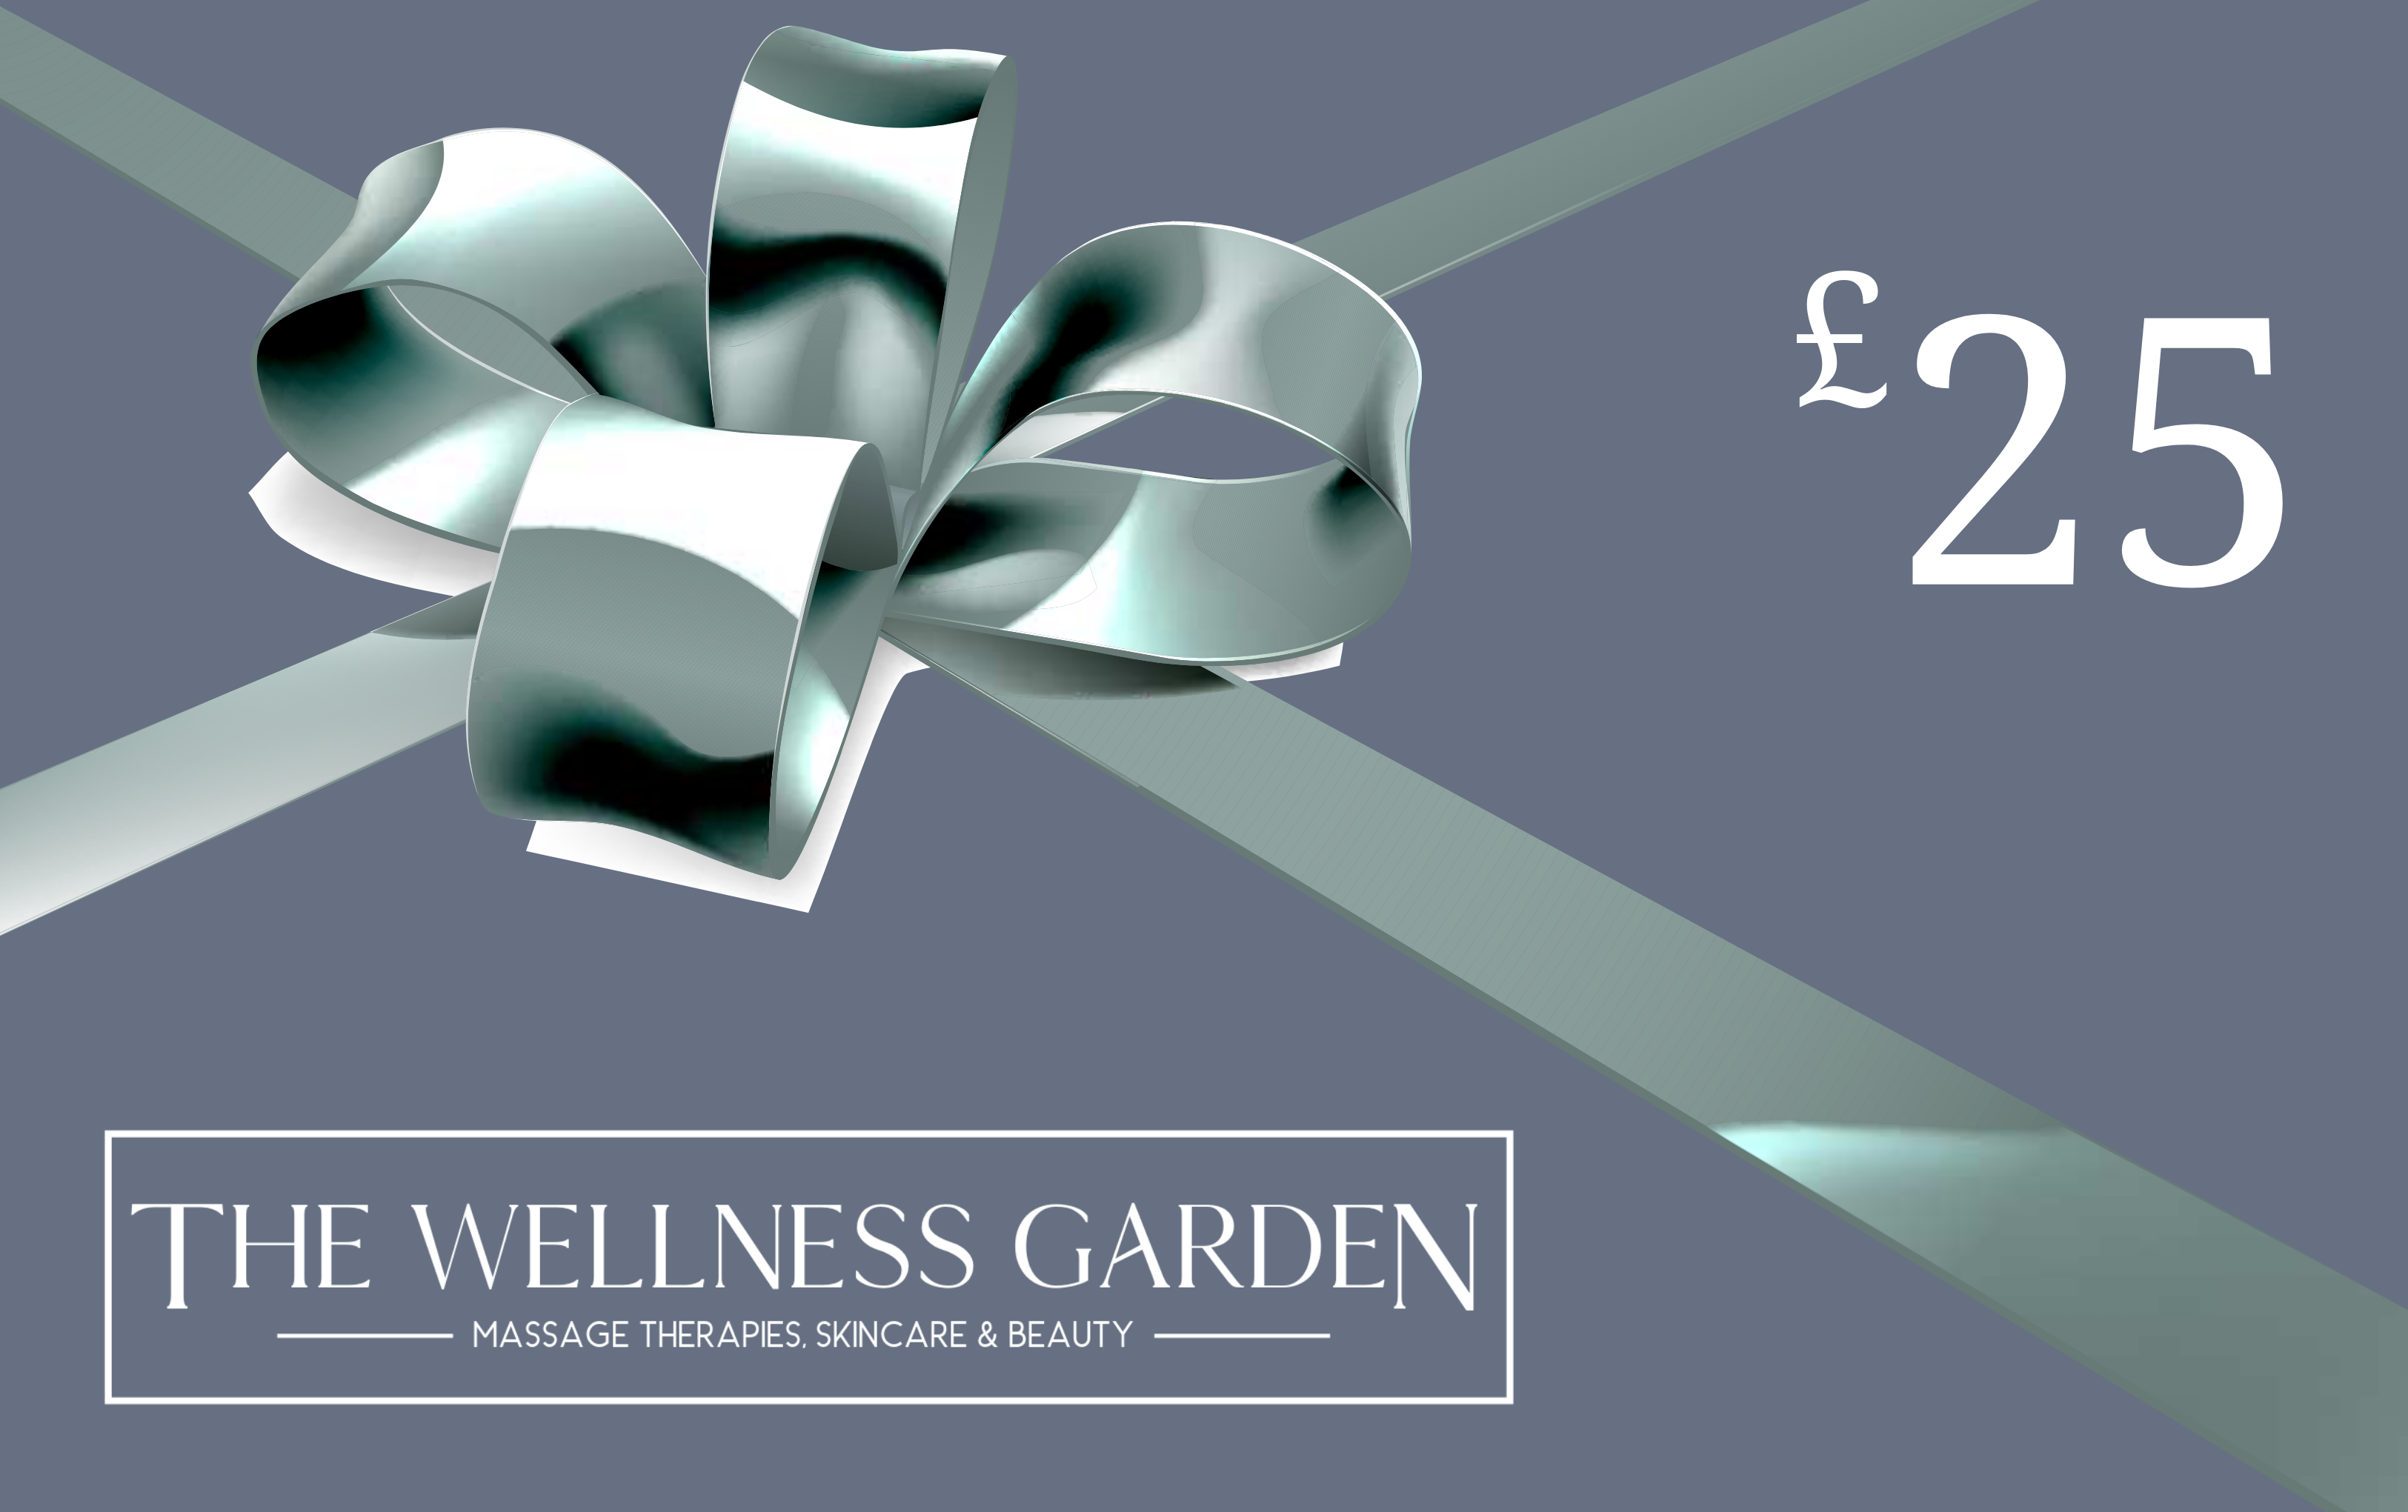 The Wellness Garden £25 gift voucher